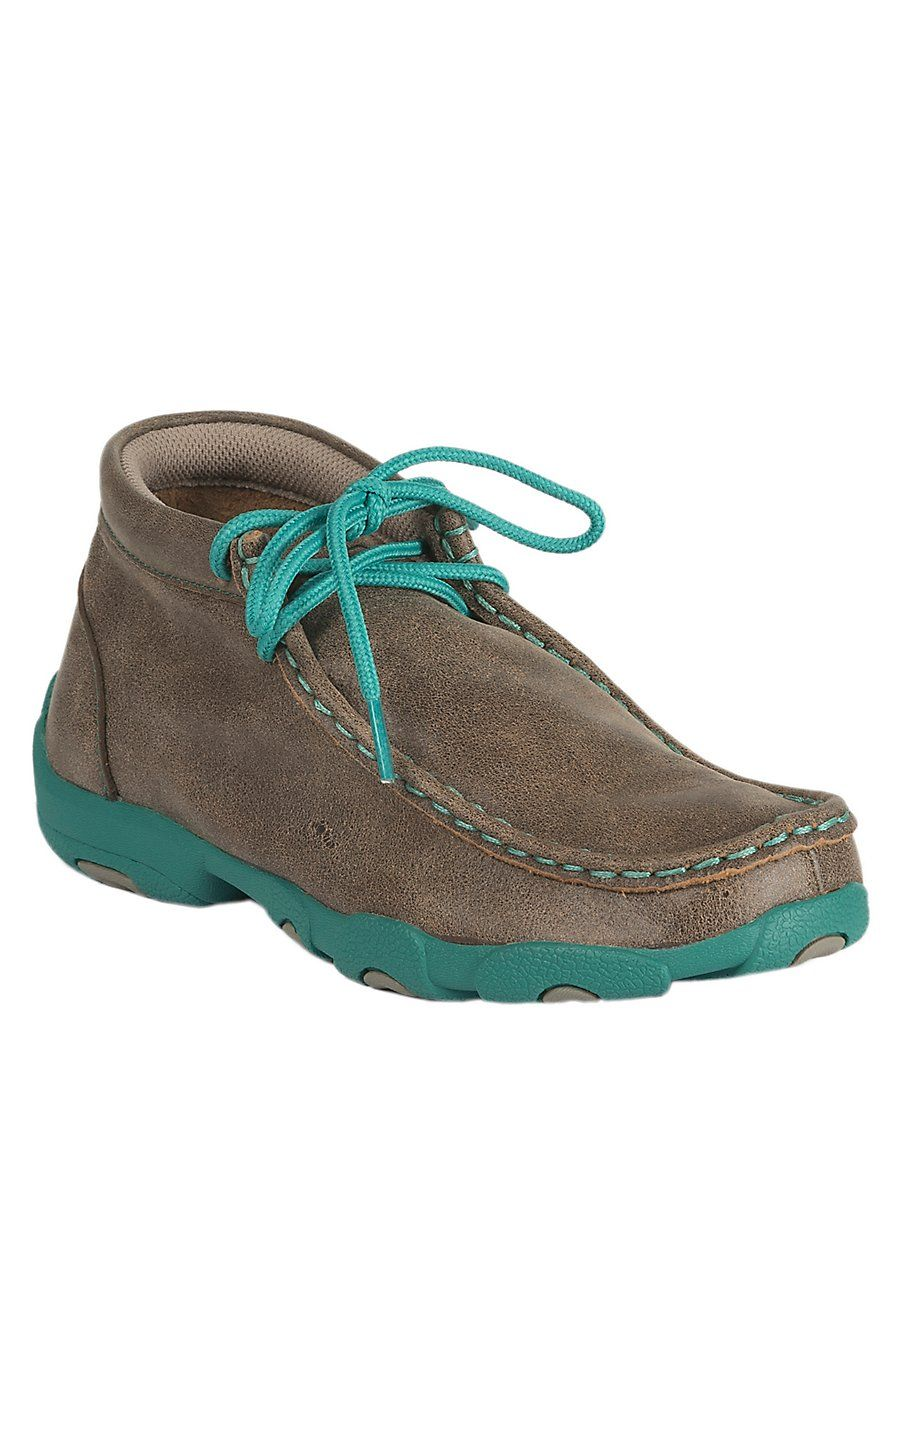 44cb86e70c9 Twisted X Youth Bomber Brown with Turquoise Driving Moccasin Casual Shoe